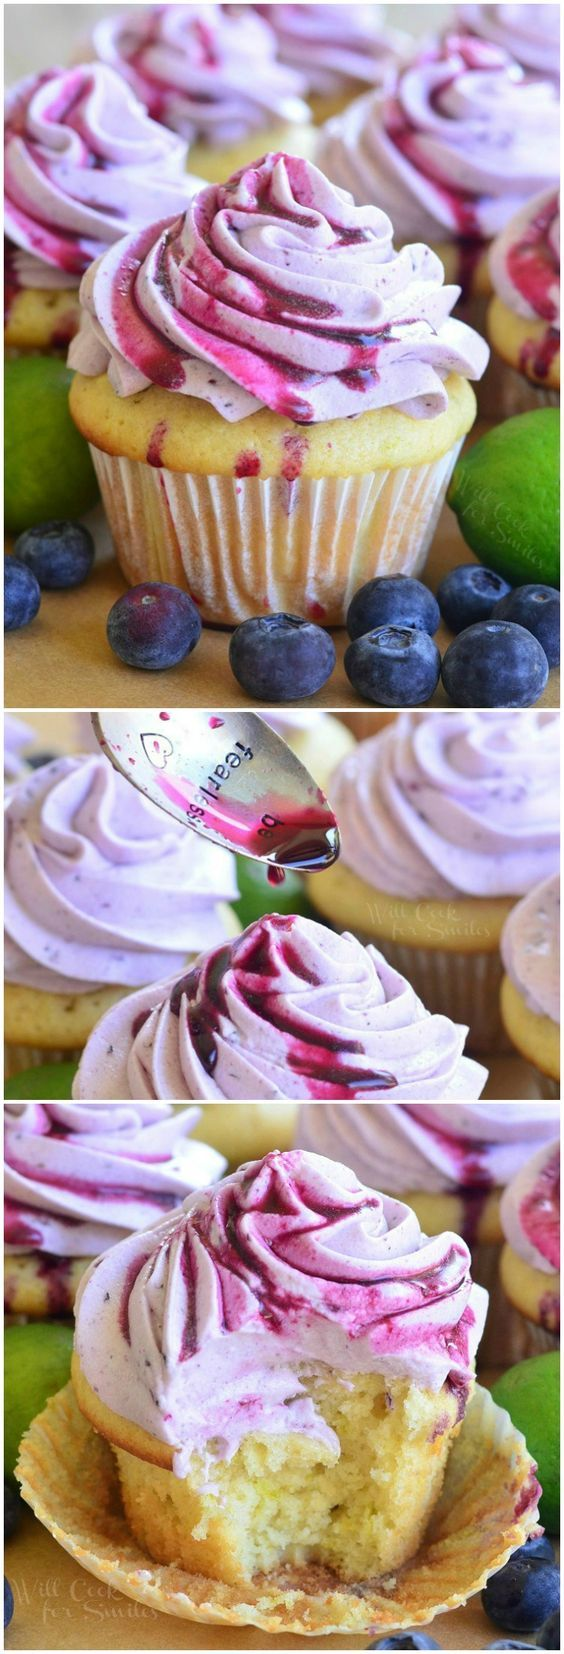 Blueberry Key Lime Cupcakes Key Lime Cupcakes with Fresh Blueberry Cream Cheese Frosting! from willcookforsmiles.com #dessert #spring